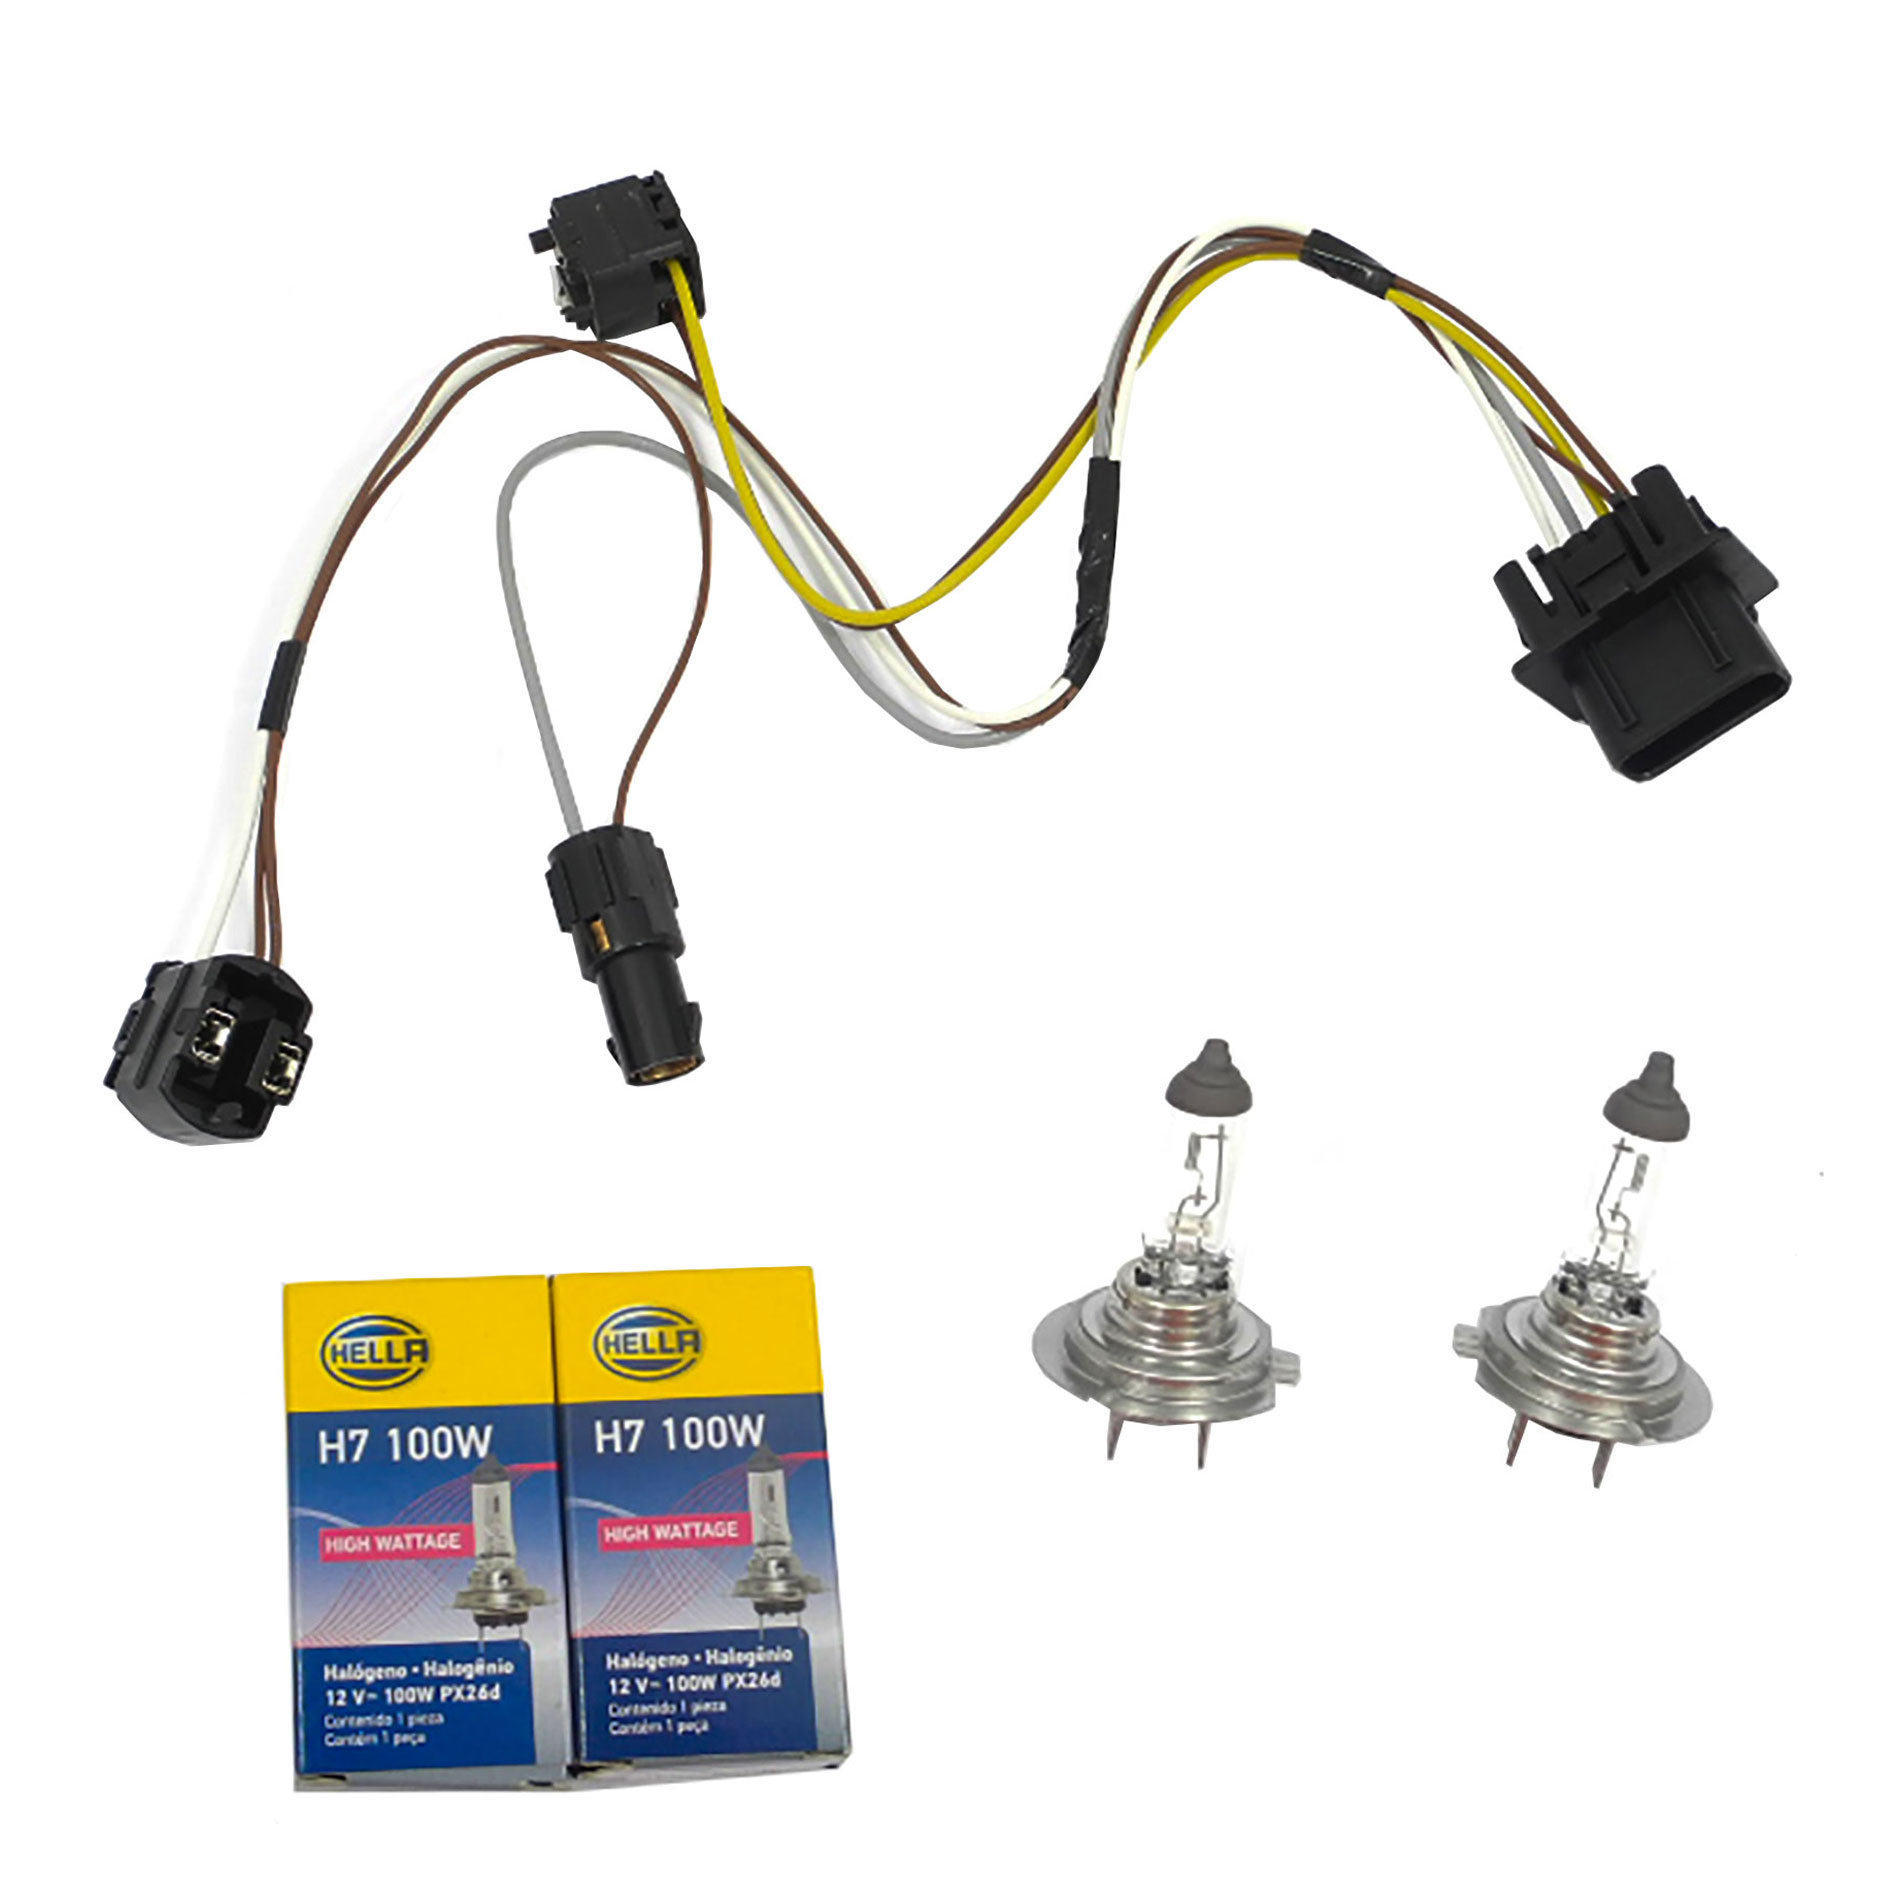 Marvelous For Benz E430 E500 E55 L R Headlight Wiring Harness And H7 100W Wiring Digital Resources Anistprontobusorg